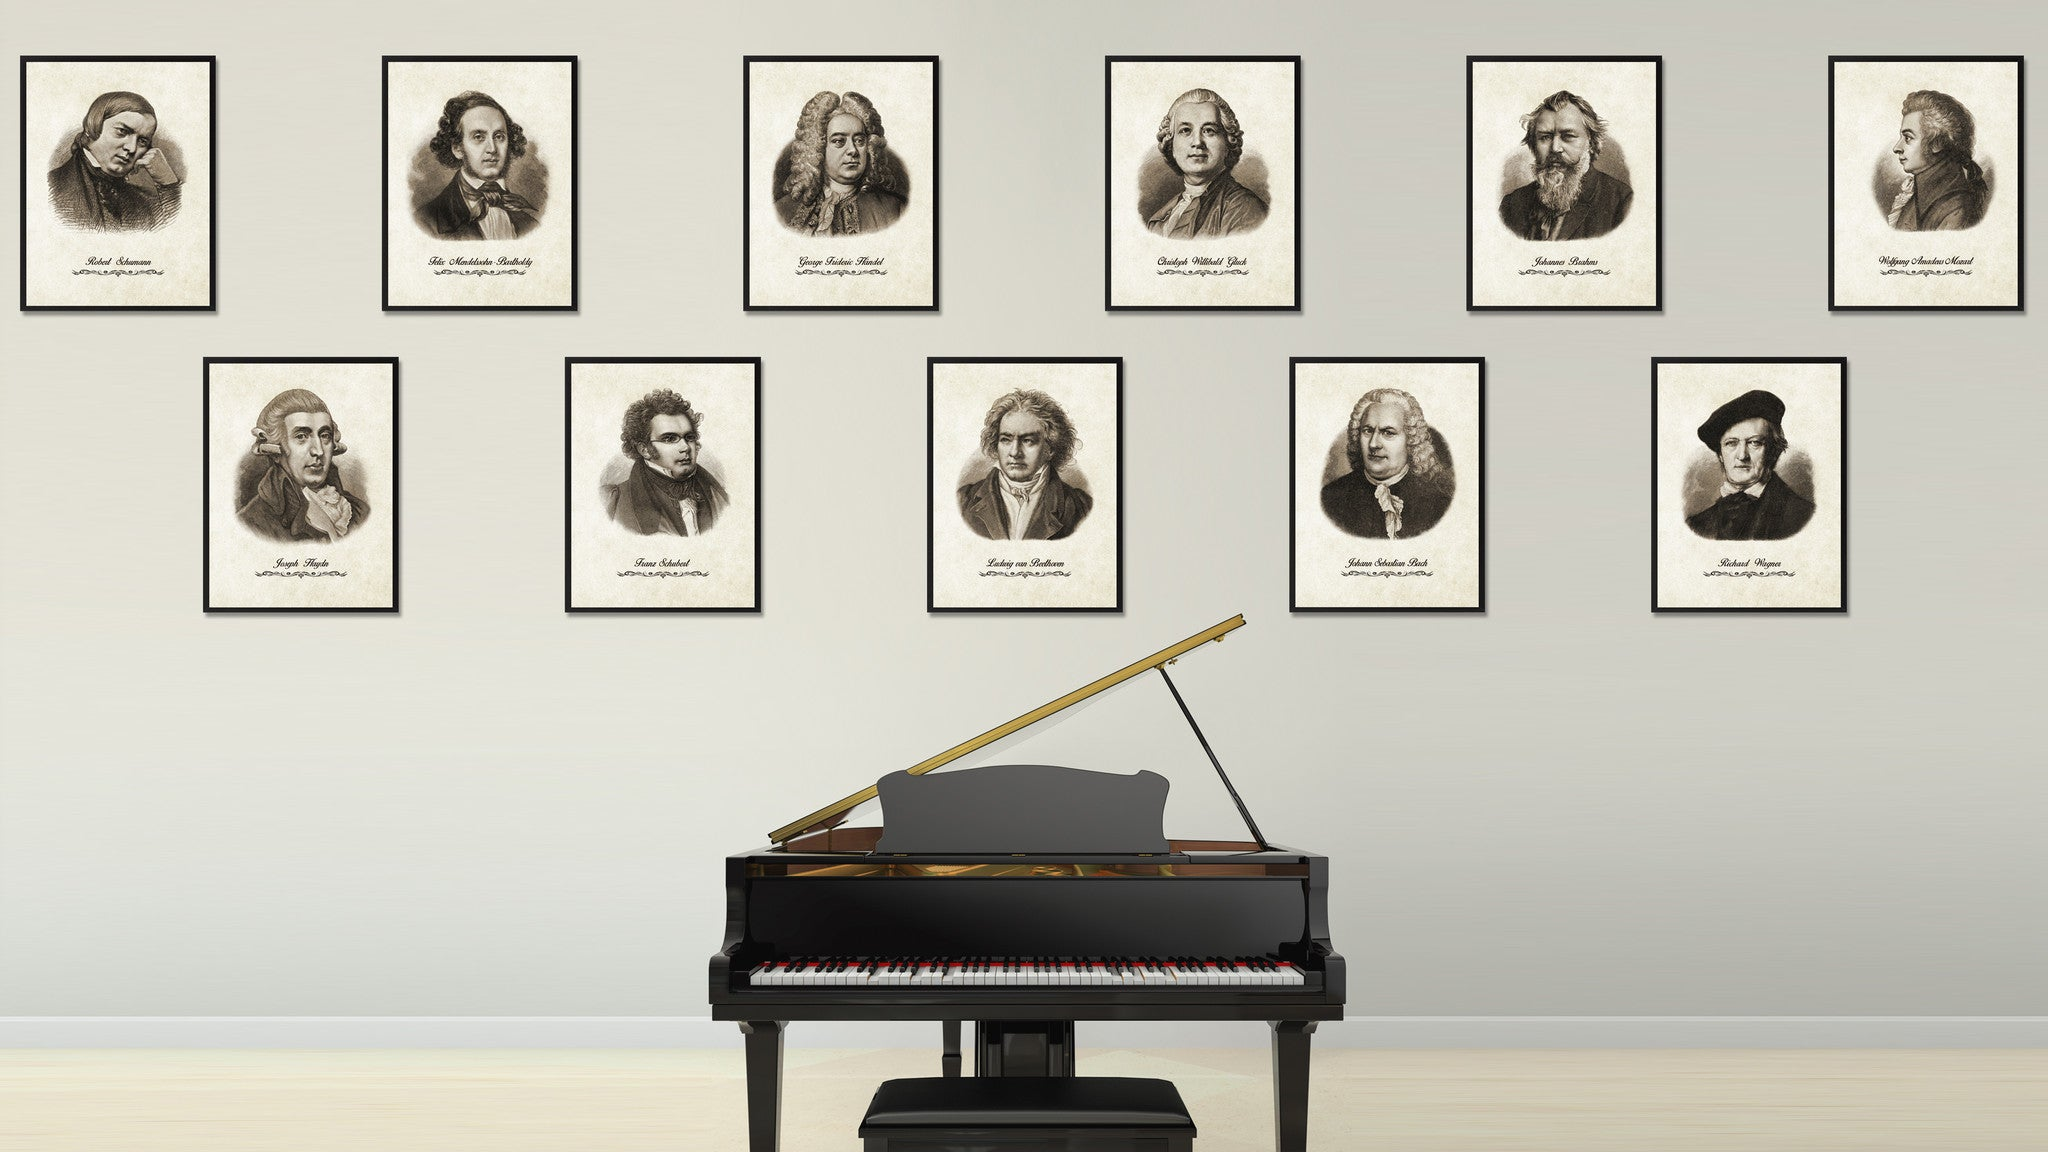 Beethoven Musician Canvas Print Pictures Frames Music Home Décor Wall Art Gifts